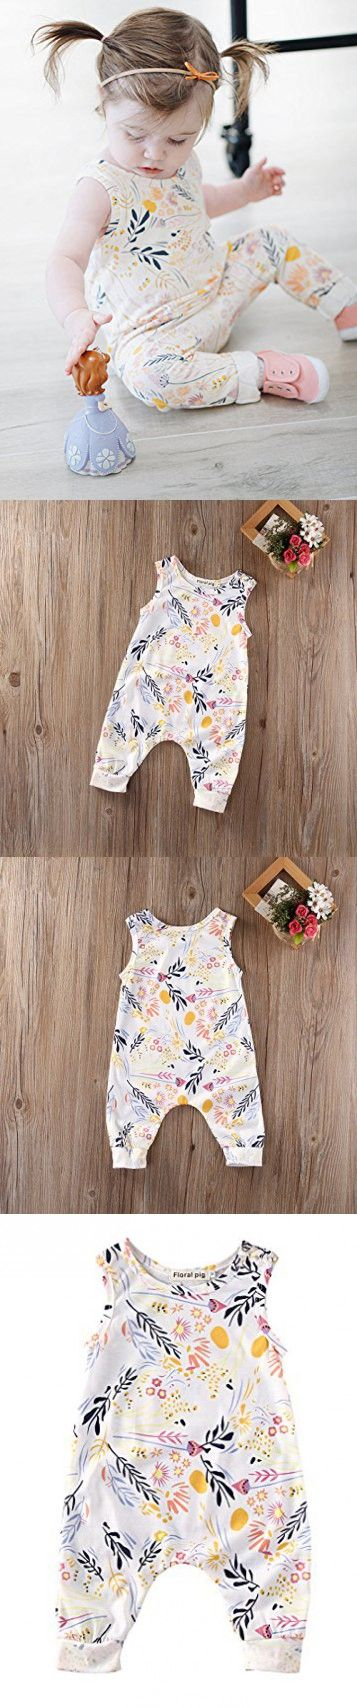 Baby Girl Sleeveless Sweet Floral Jumpers Rompers Bodysuit Playsuit Outfits (0-6 Month)